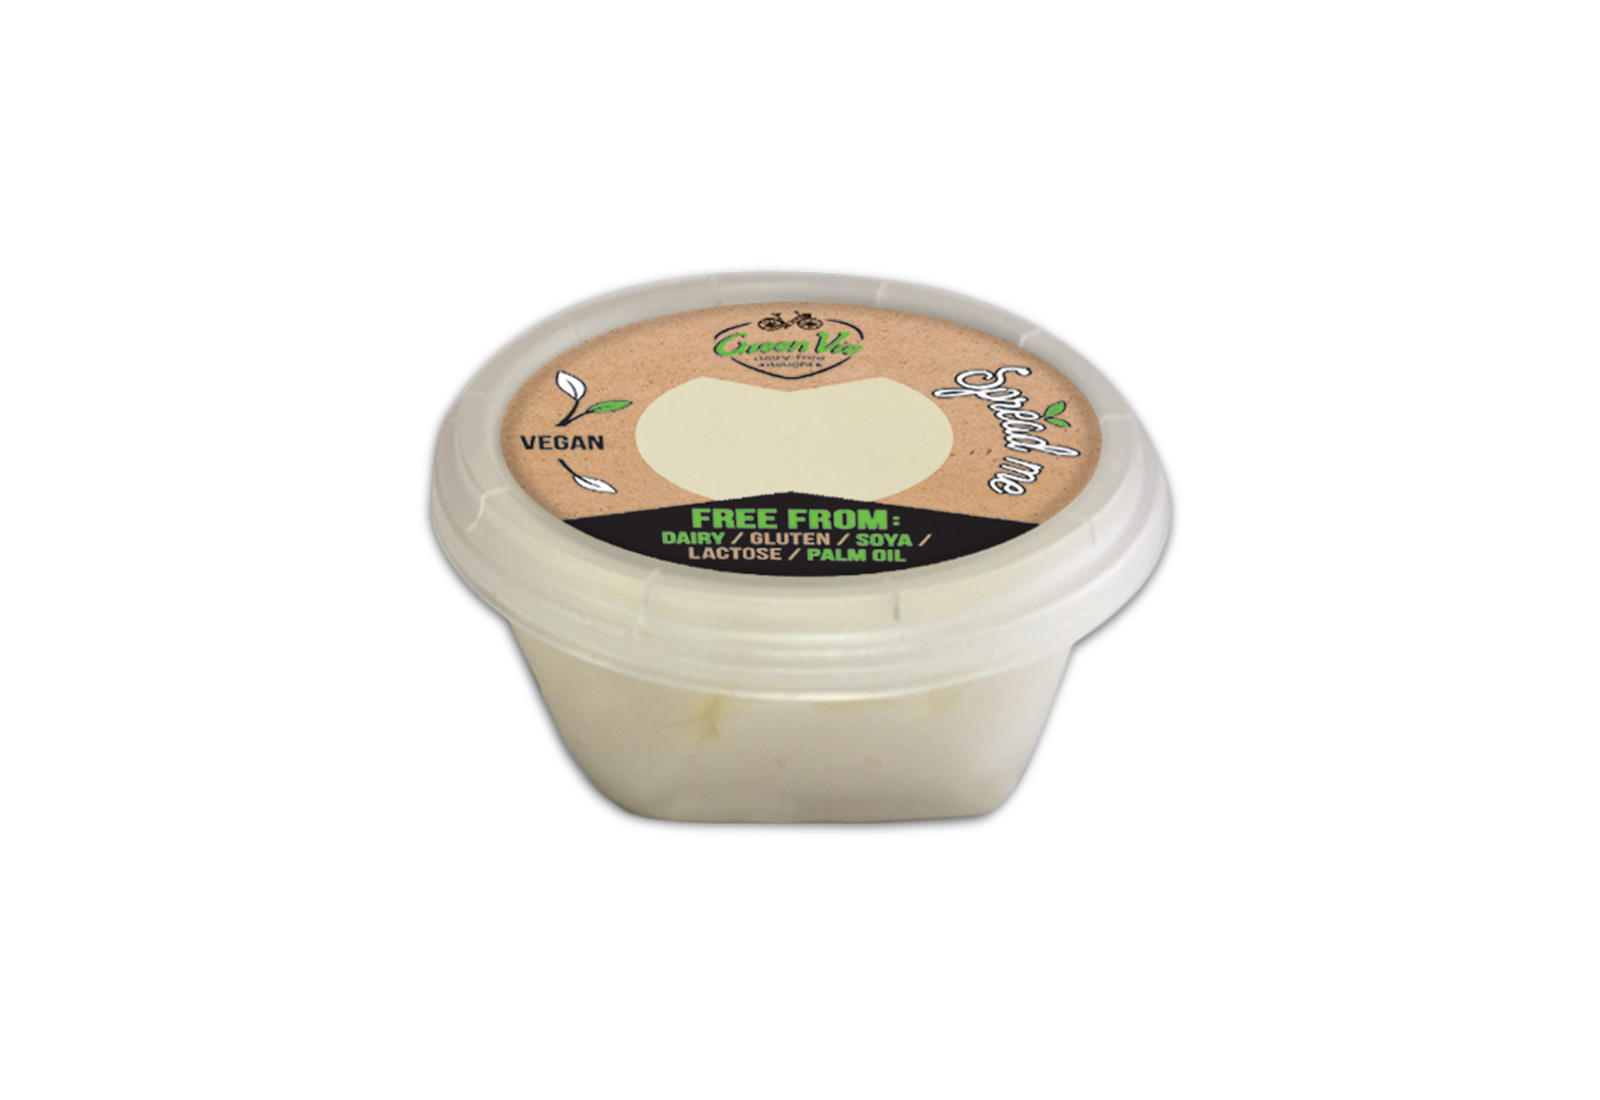 Vegan Dairy-Free GreenVie cheese spread